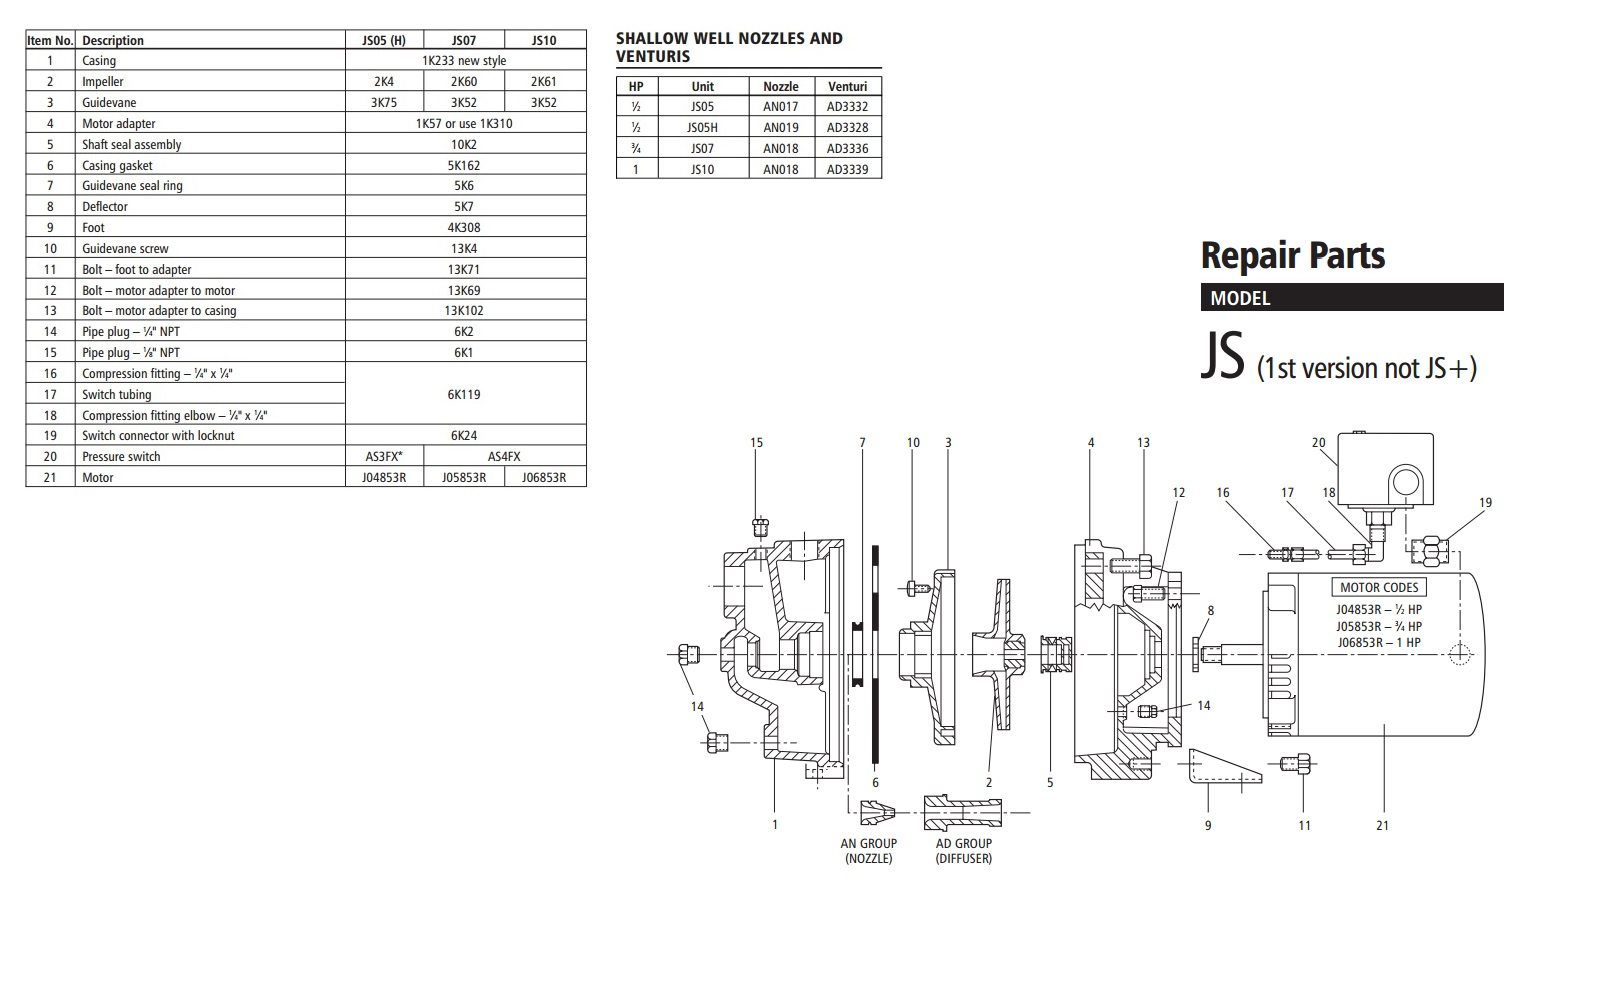 Enerpac Wiring Diagram Honda Motorcycle Repair Diagrams